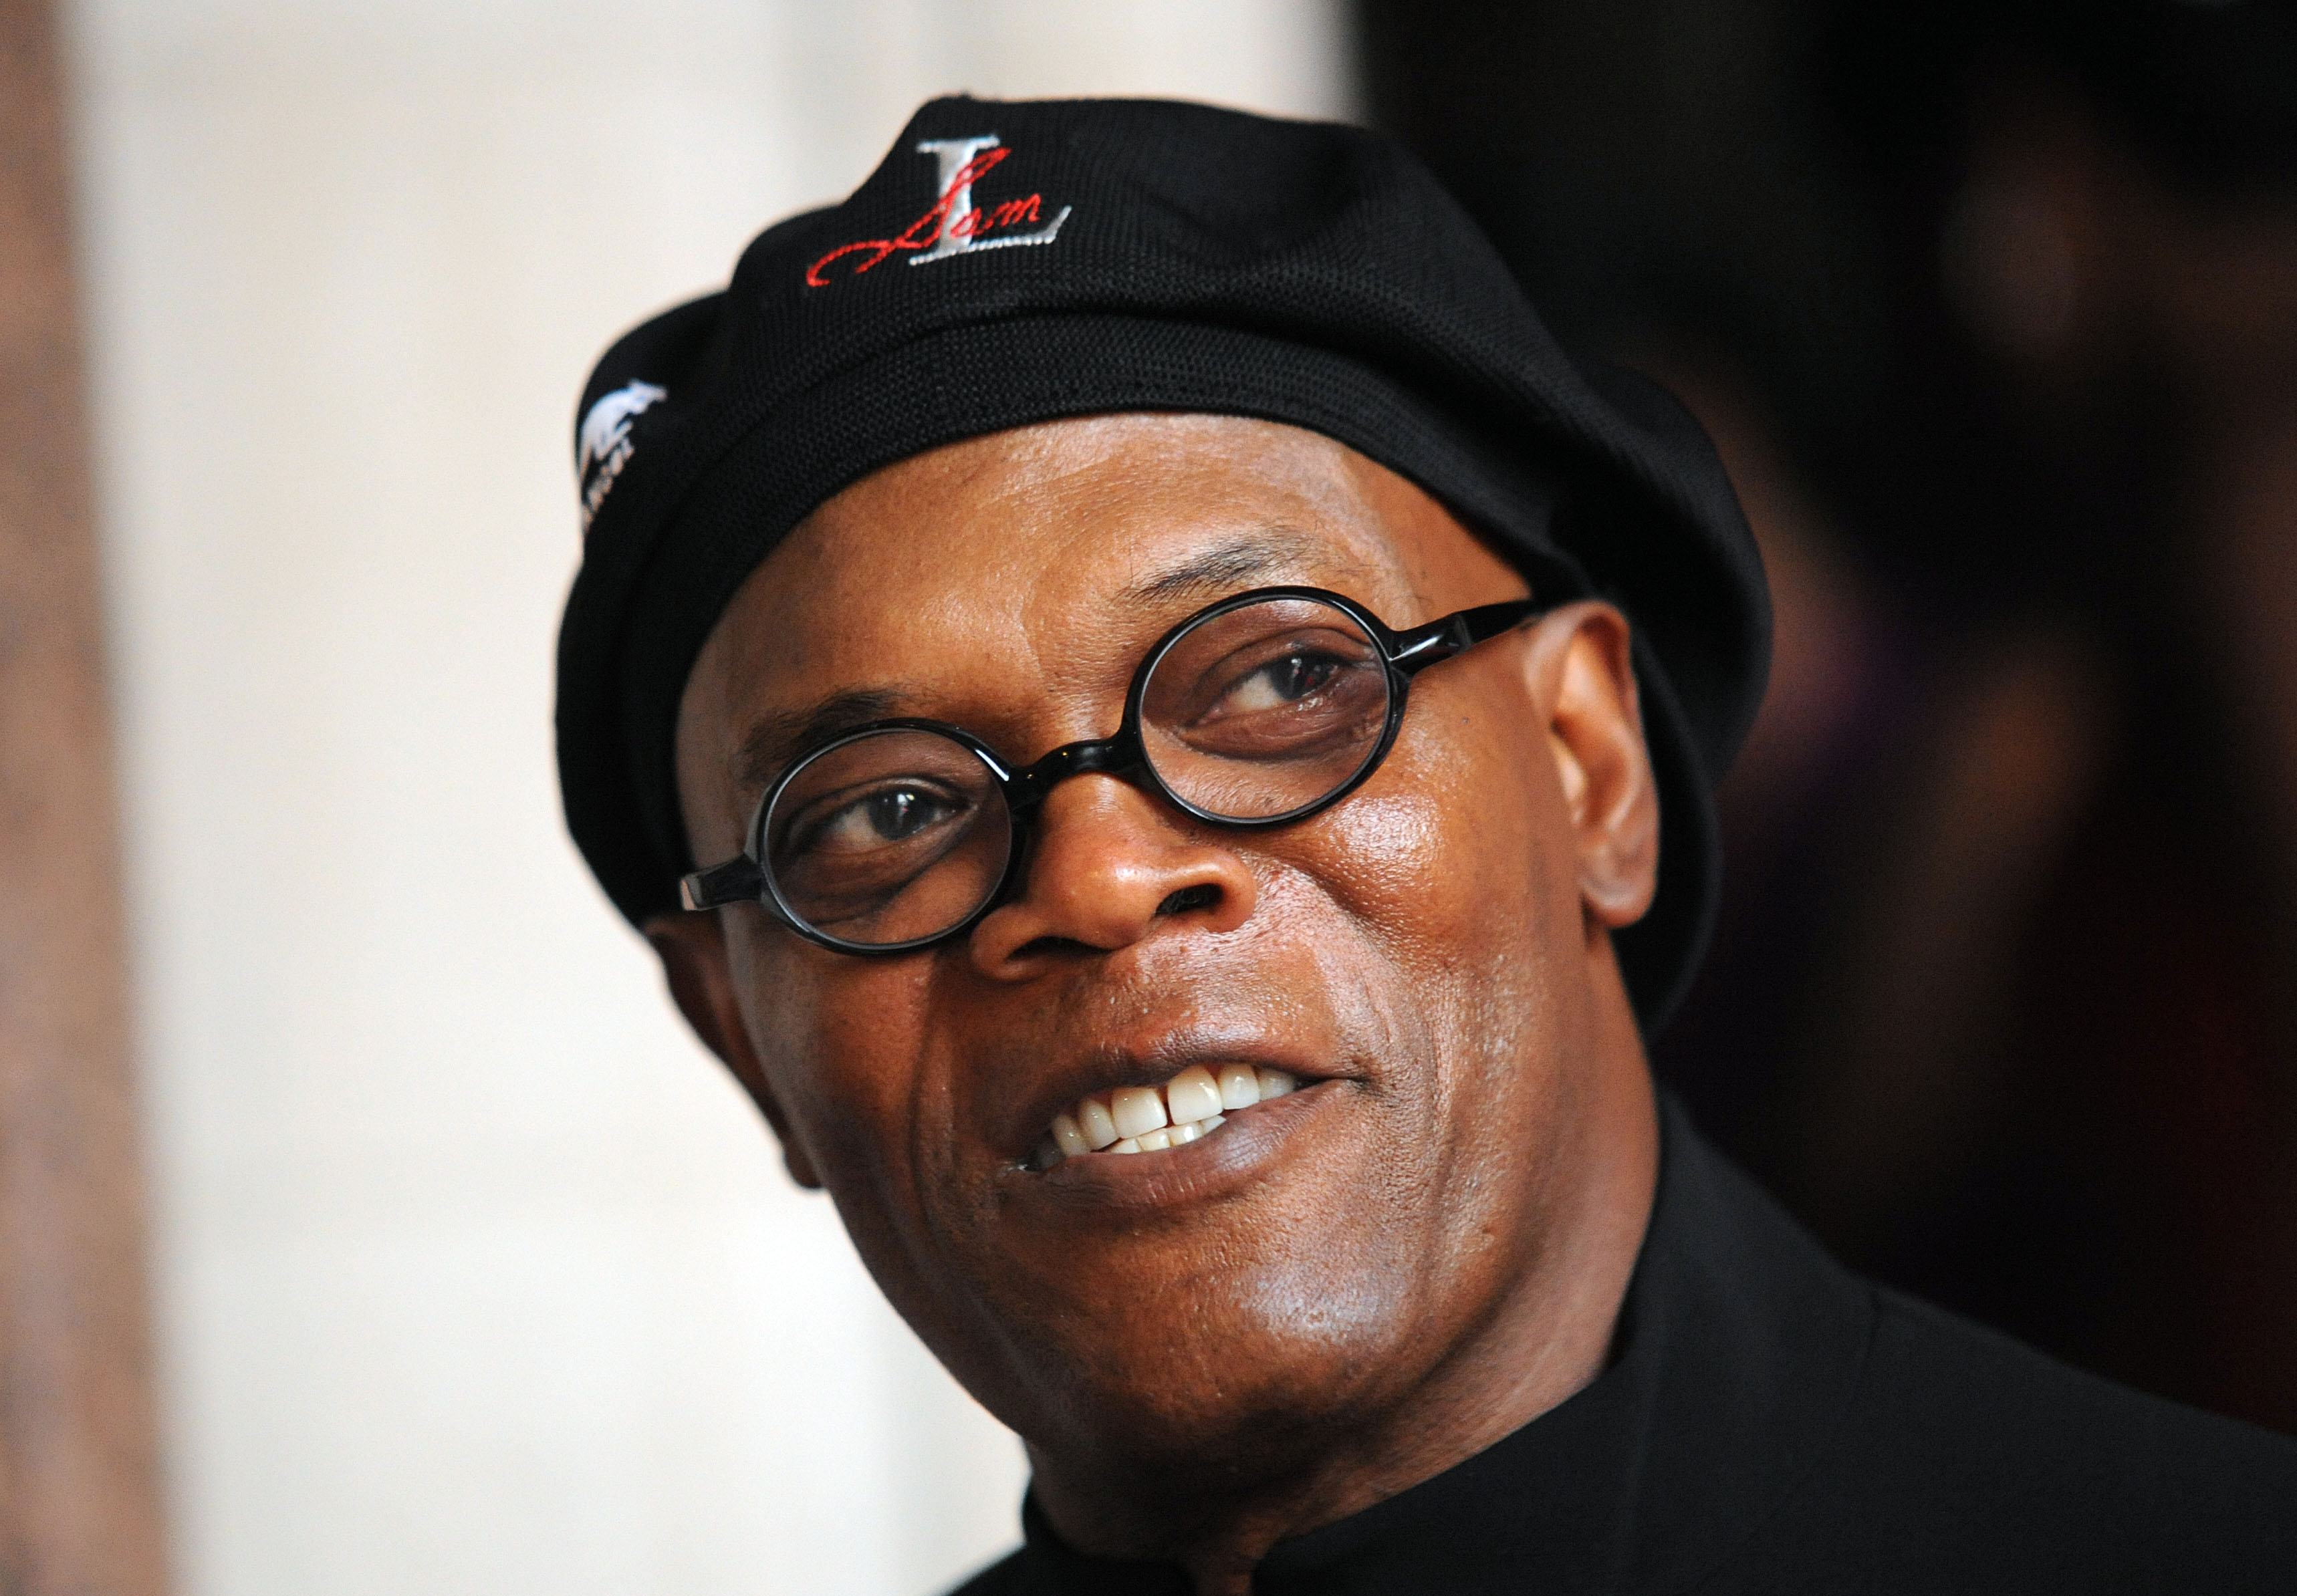 Samuel L Jackson really doesn't care if voicing opinions on Donald Trump costs him fans